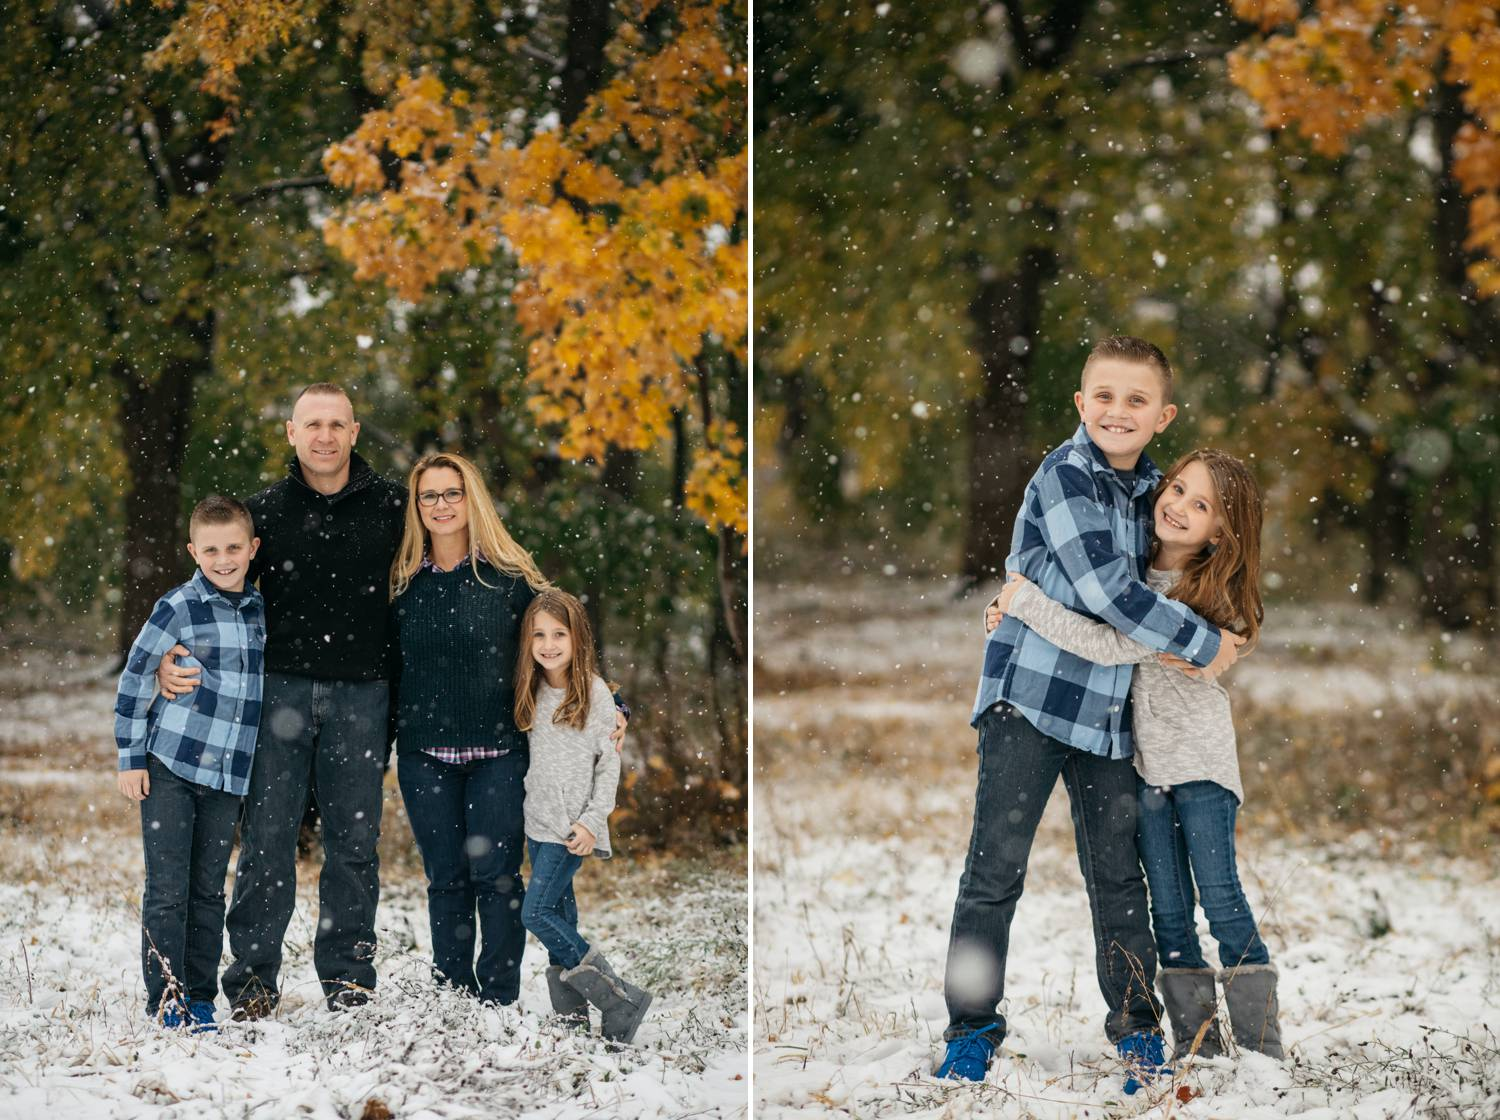 In two side-by-side photos by Nicole Nero Studio, snow falls through golden trees. In one photo, a family stands close together, smiling at the camera through falling snow. In the next photo, two kids hug while smiling at the camera as snow falls around them. Christmas Mini Session: Ideas Families will ADORE!